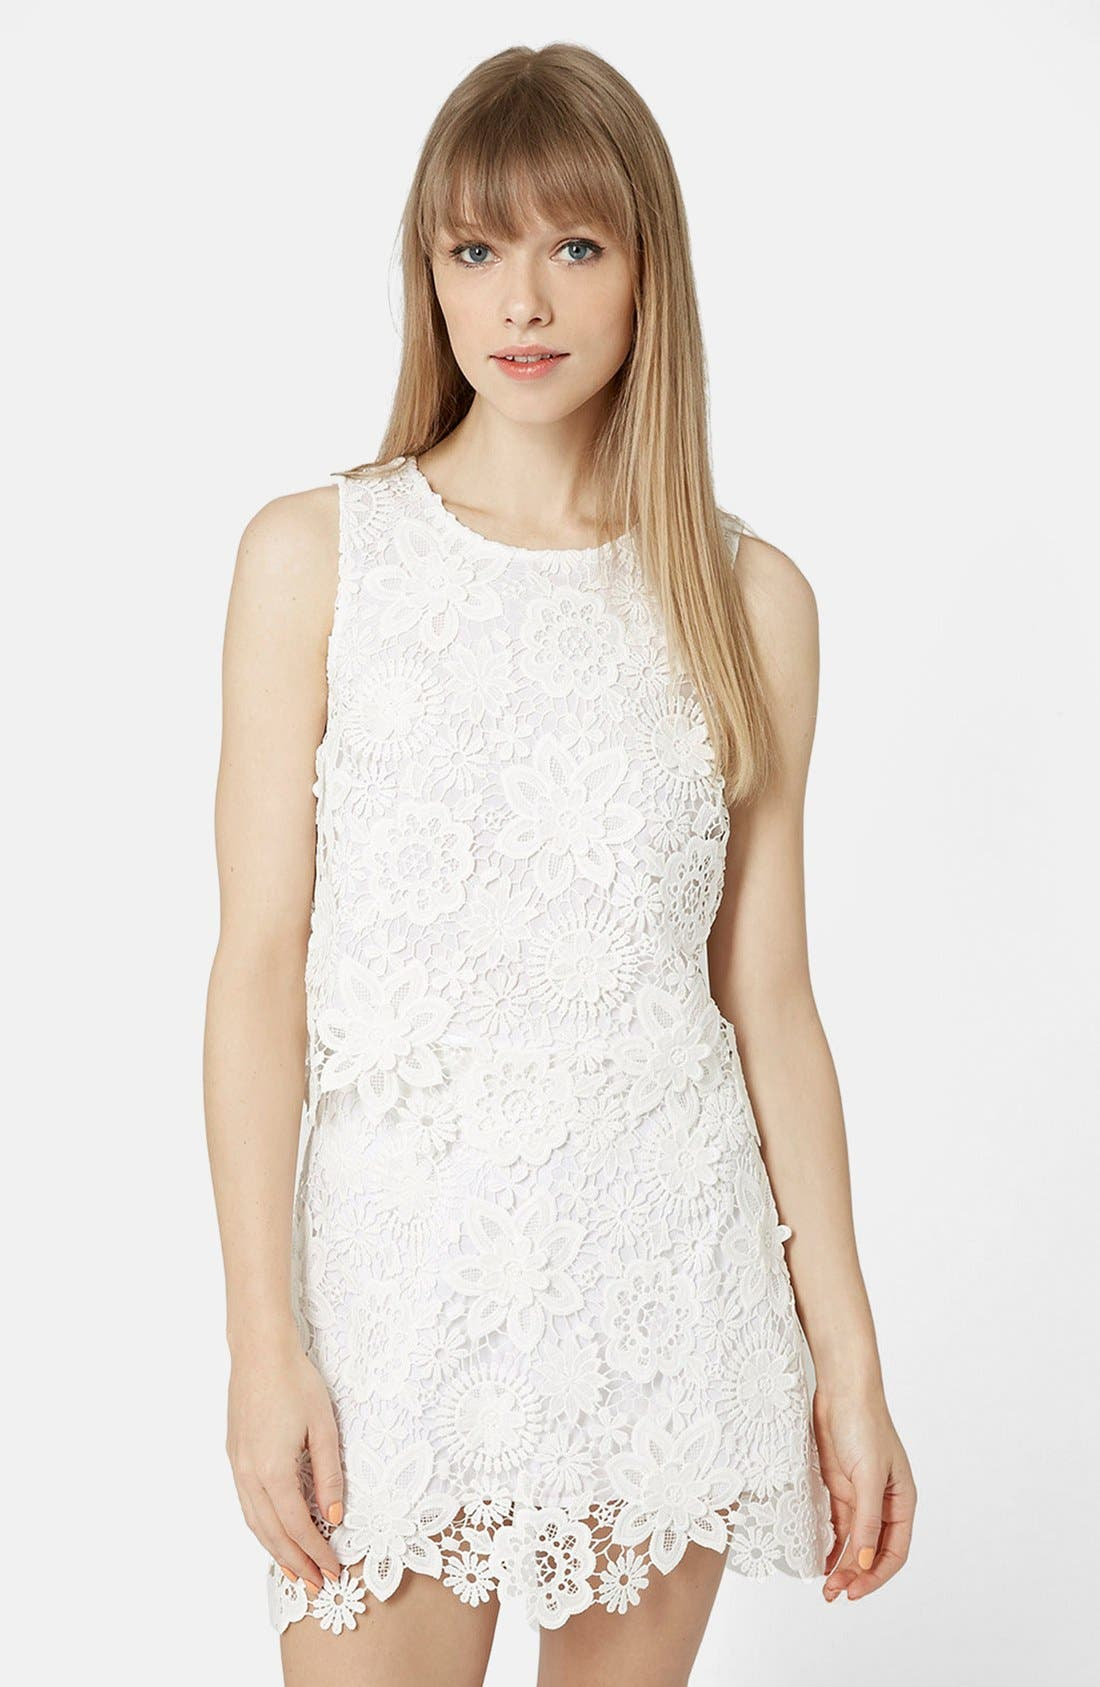 Alternate Image 1 Selected - Topshop Crochet Lace Shell Top (Petite)